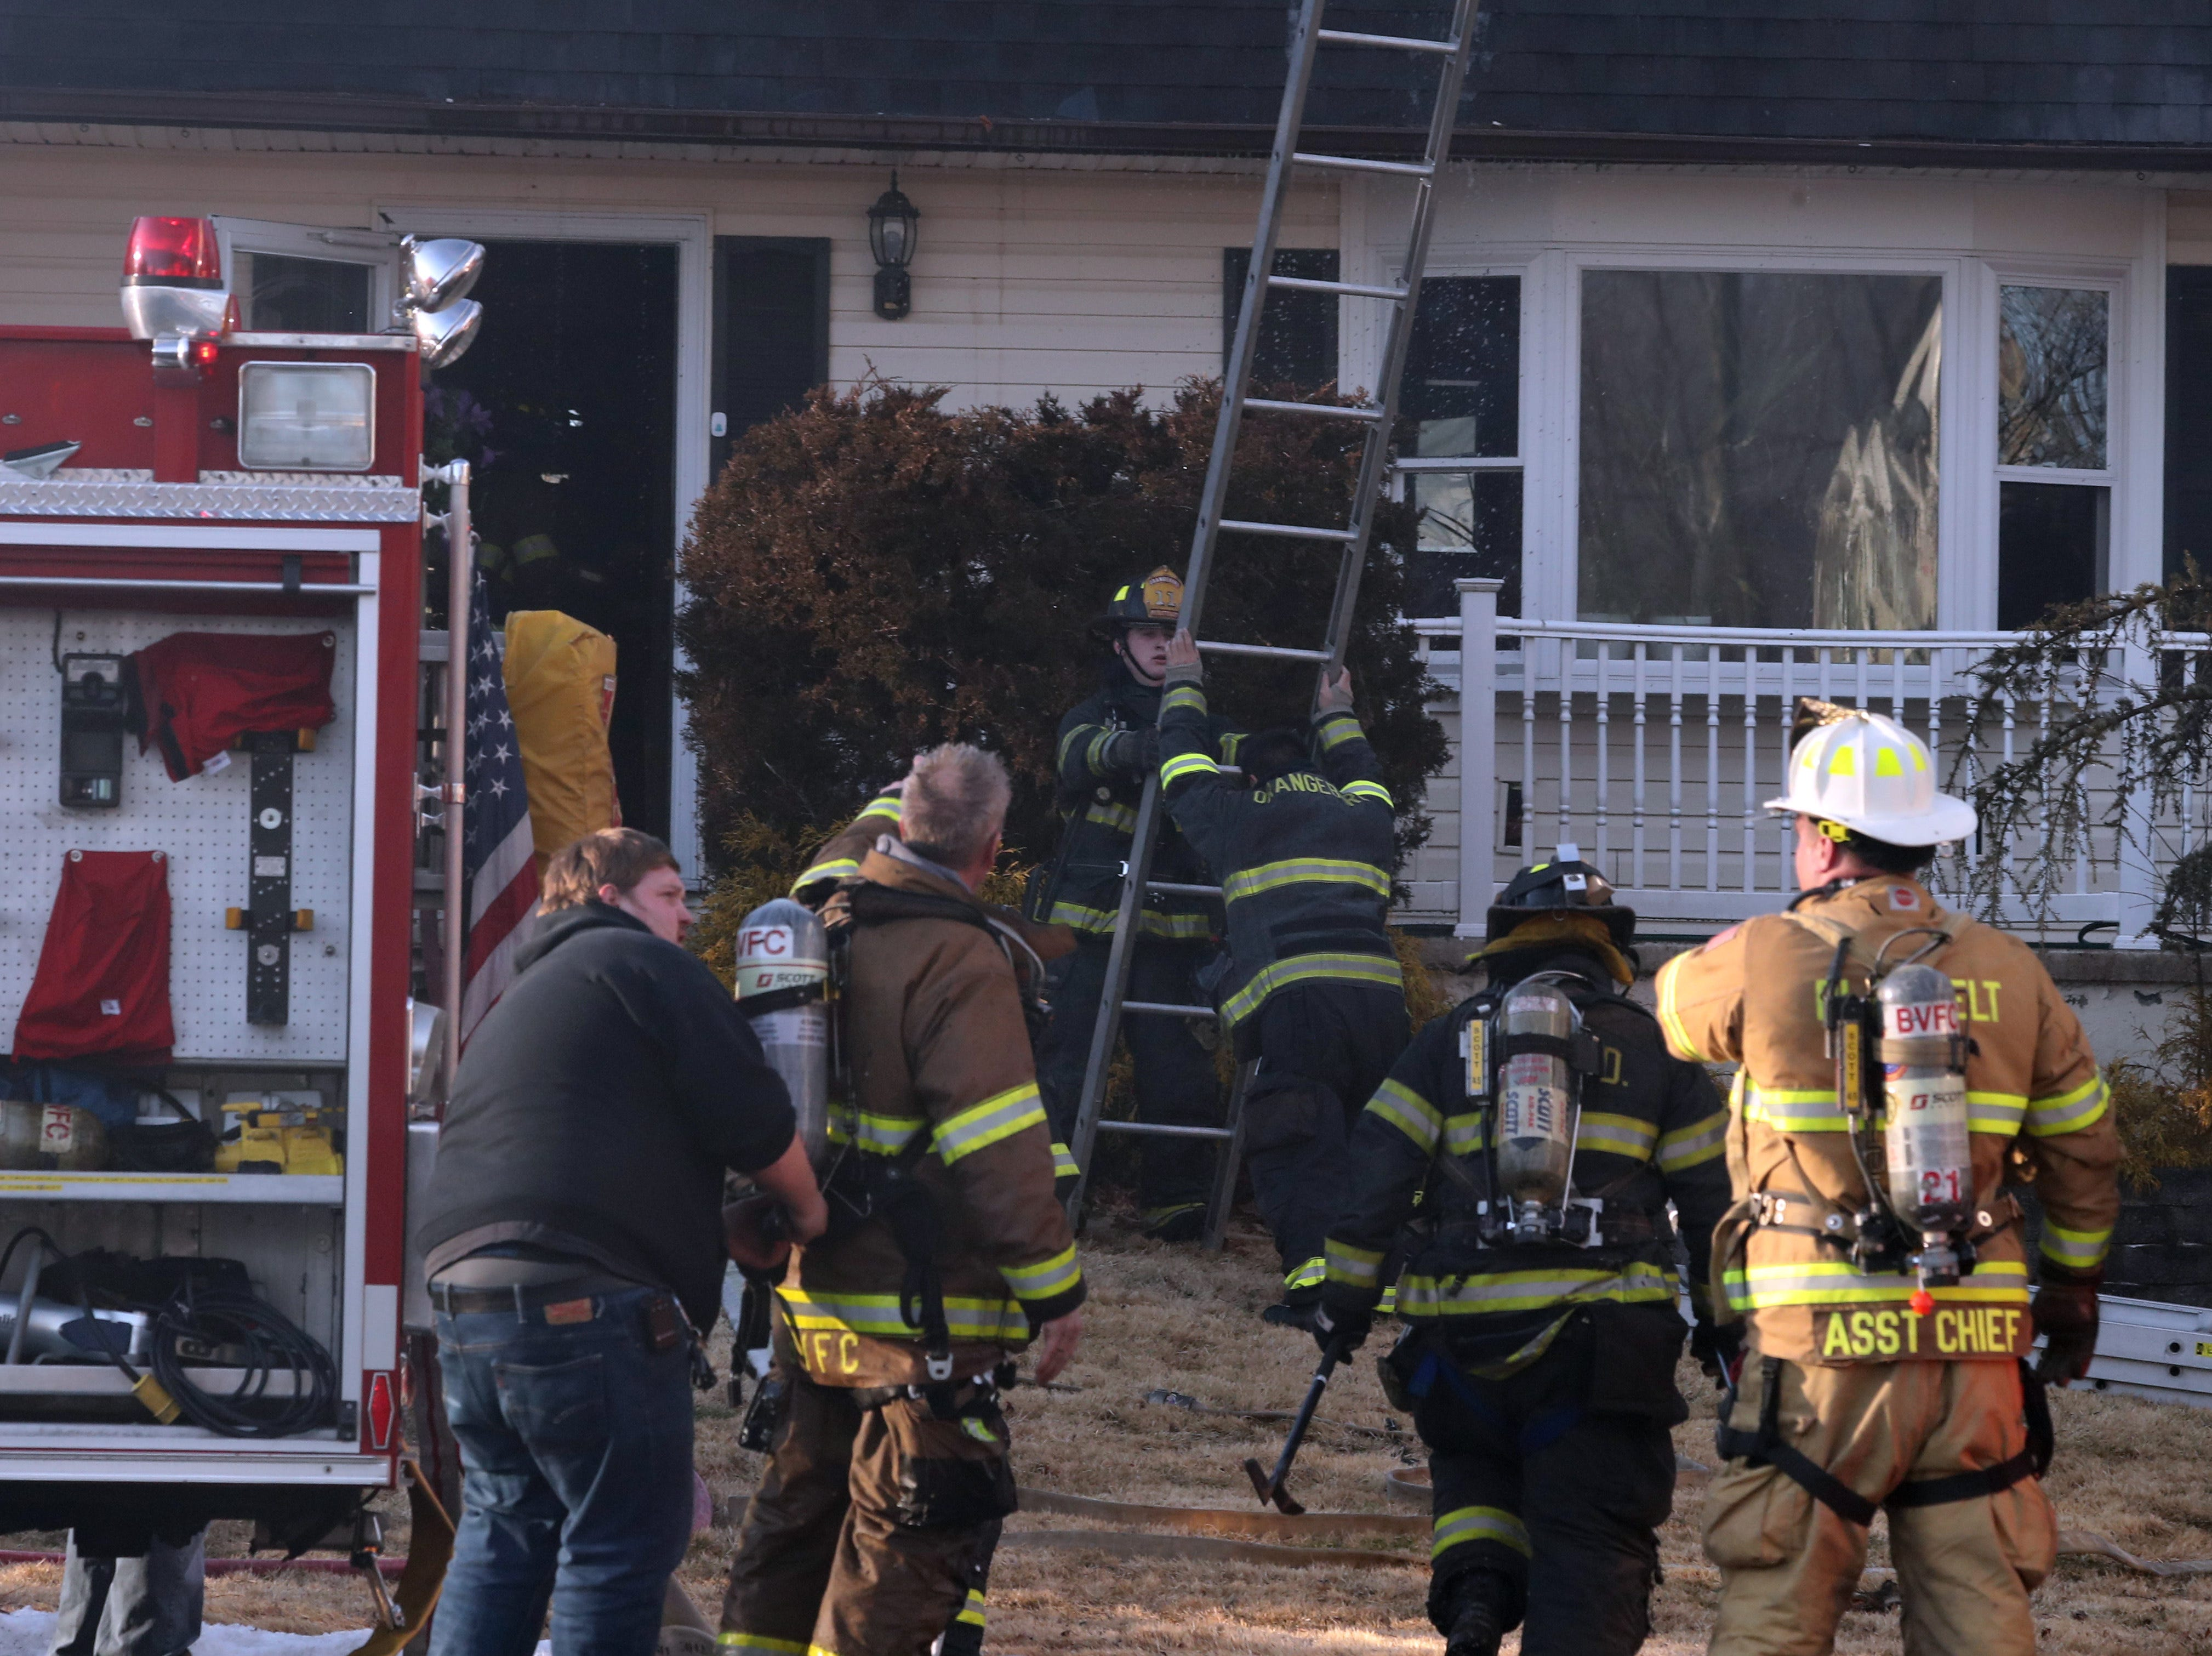 firefighters work on a house fire on Glynn Oval in Blauvelt Feb. 16, 2019. Blauvelt, Orangeburg, Tappan, Pearl River and Central Nyack fire departments responded to the fire.